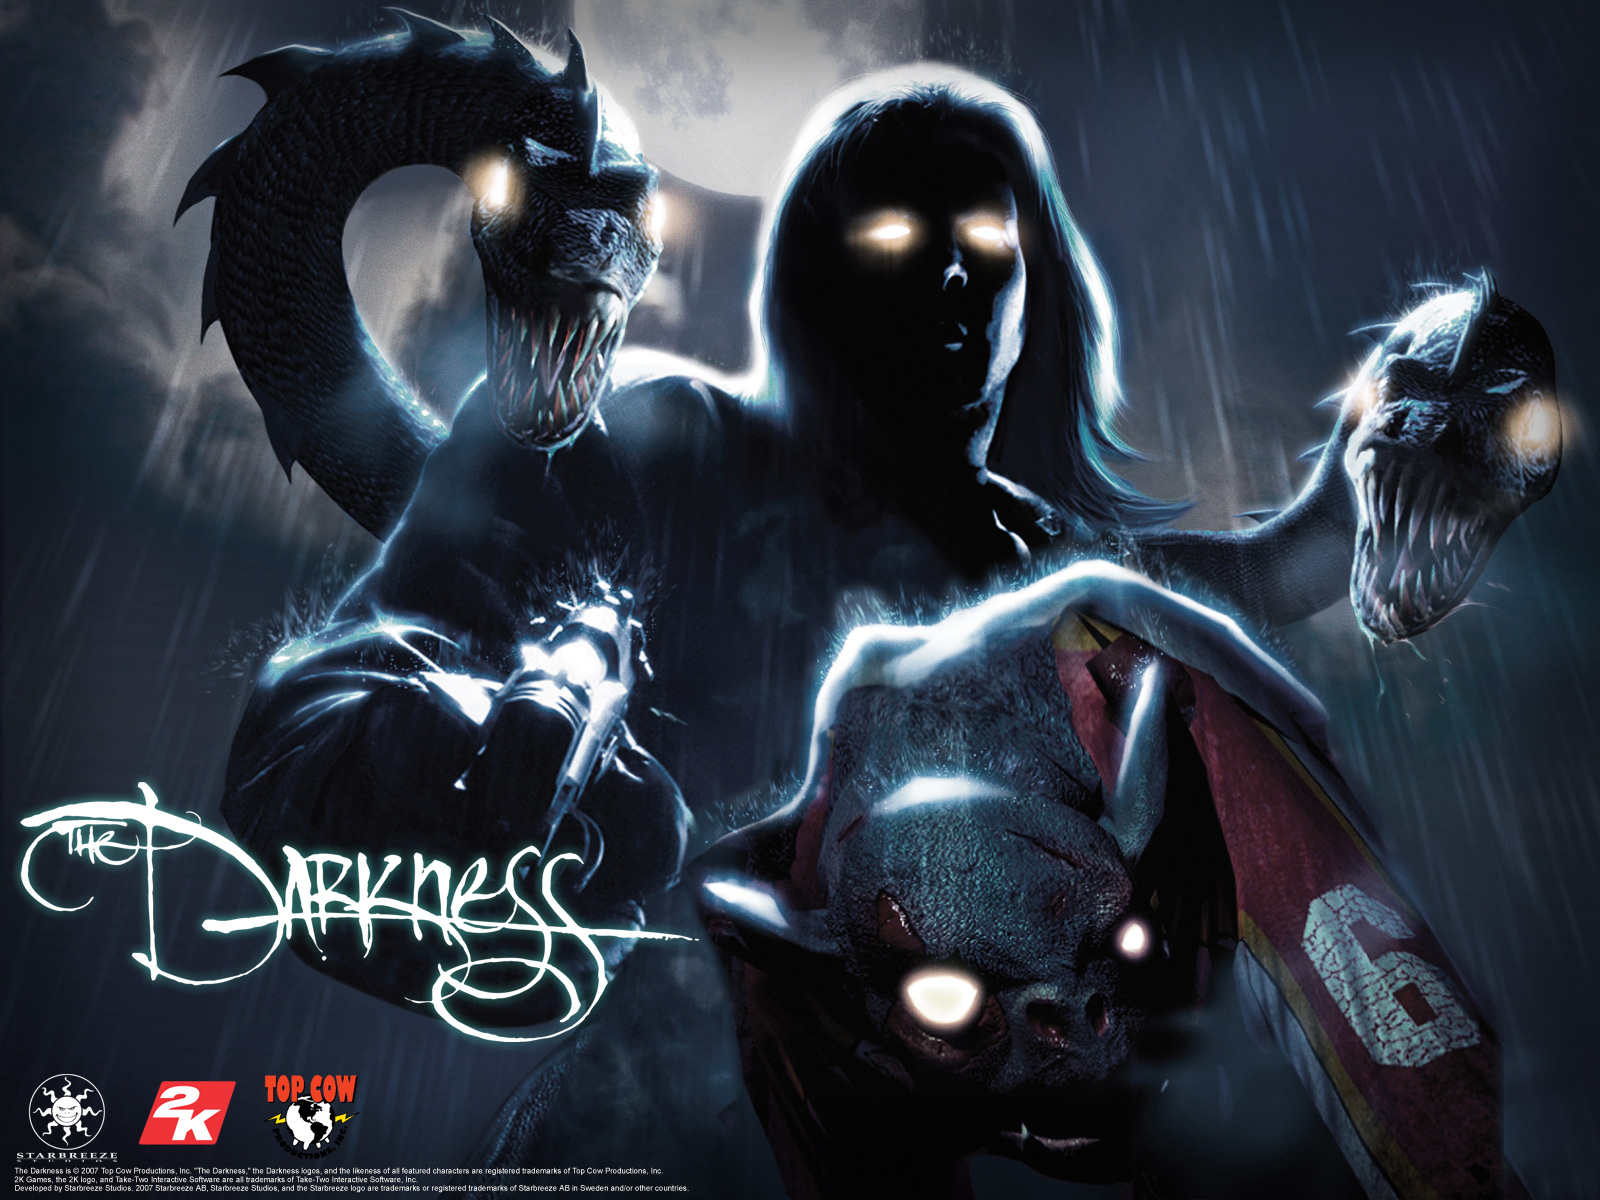 Anyone else play this game and love it Good reviews for a game with 1600x1200